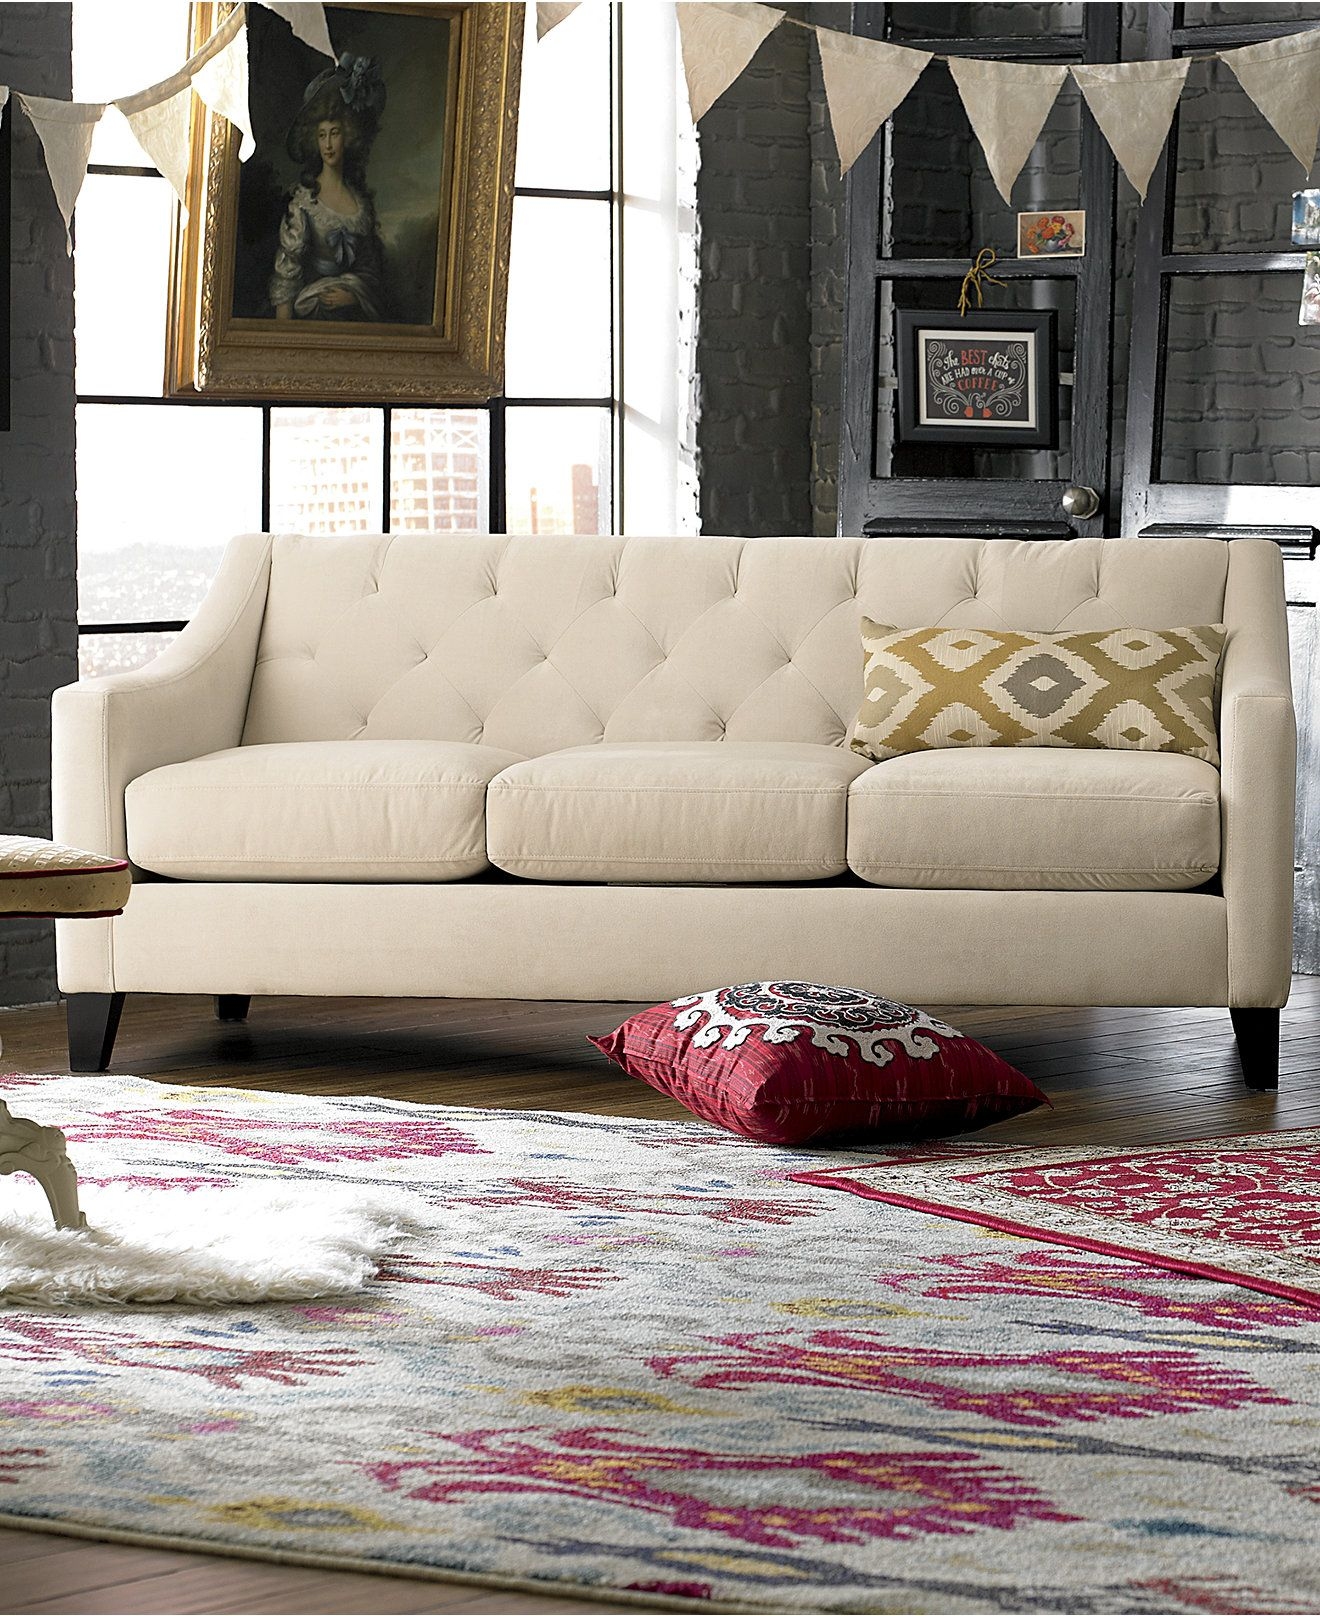 Chloe velvet tufted sofa living room furniture collection only at macys custom color sofa